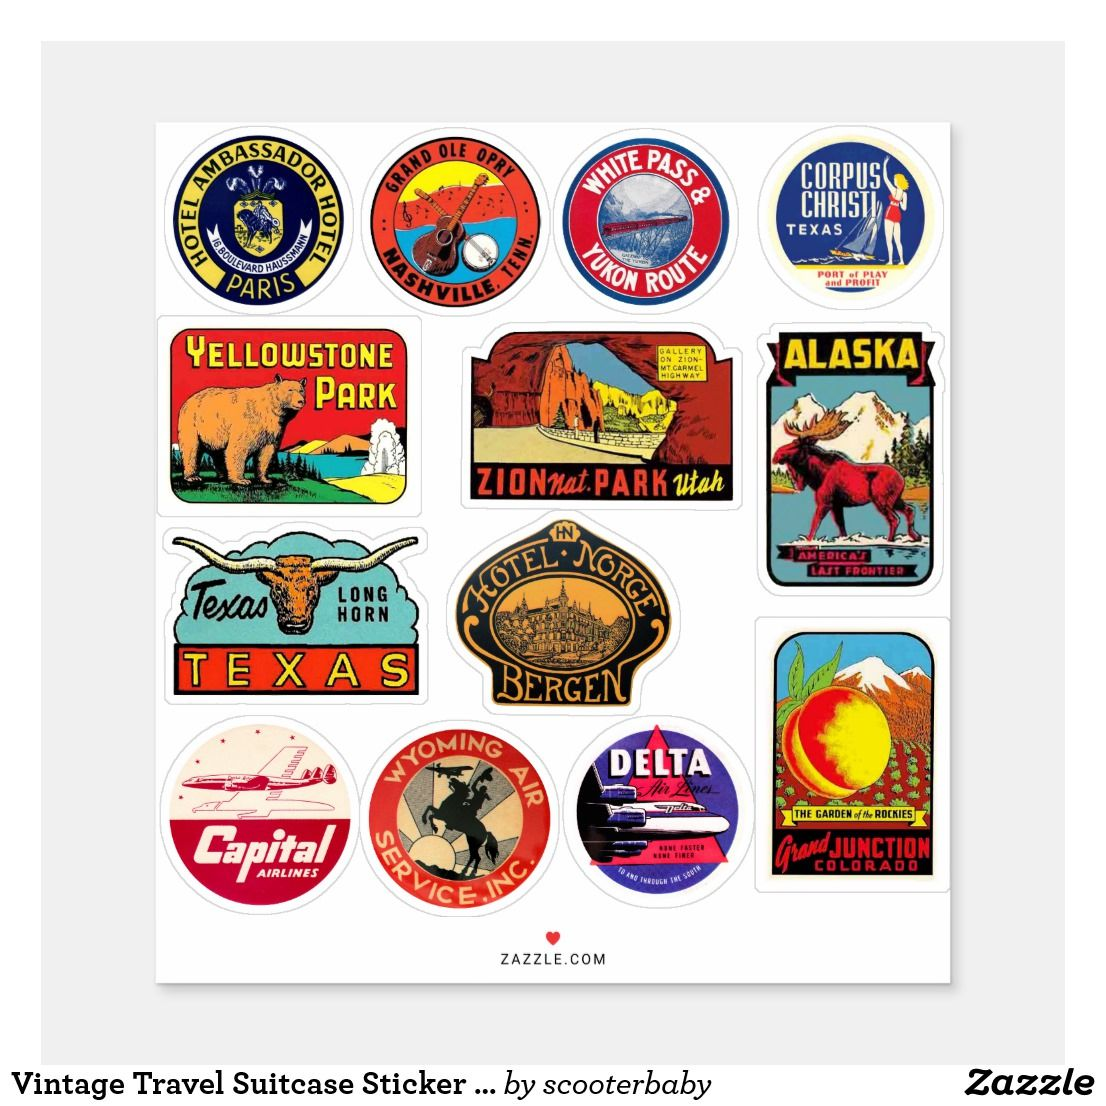 Vintage Travel Suitcase Sticker Luggage Decal Zazzle Com Suitcase Stickers Vintage Travel Design Your Own Stickers